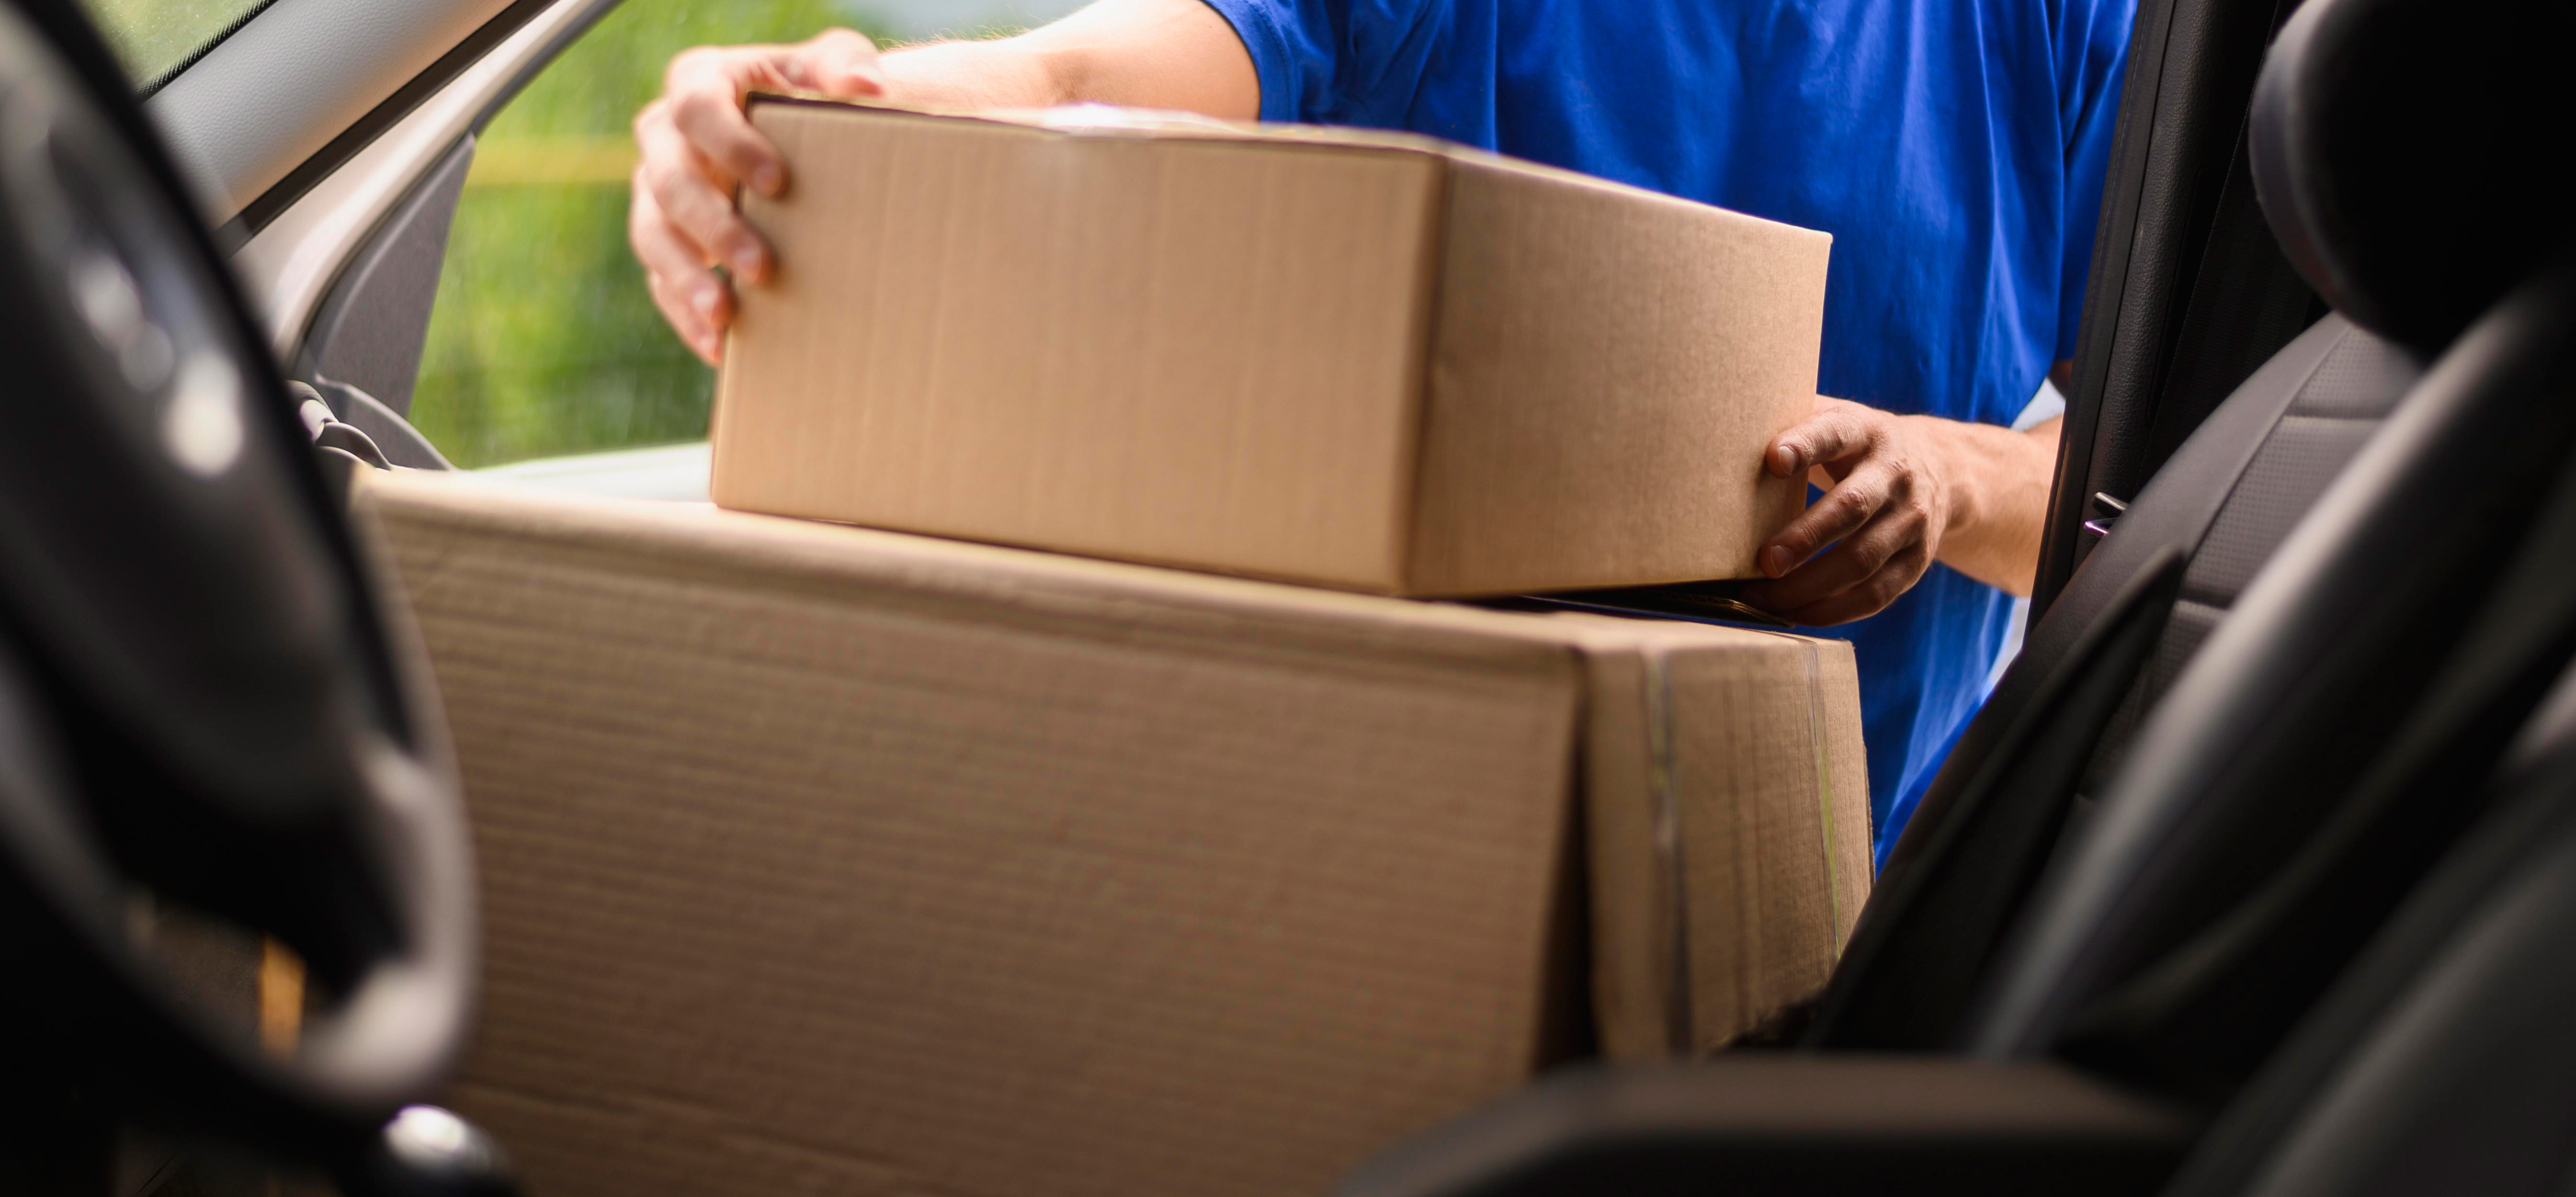 How a Custom Logistic Software Can Improve the Efficiency of Your Small Logistics Business